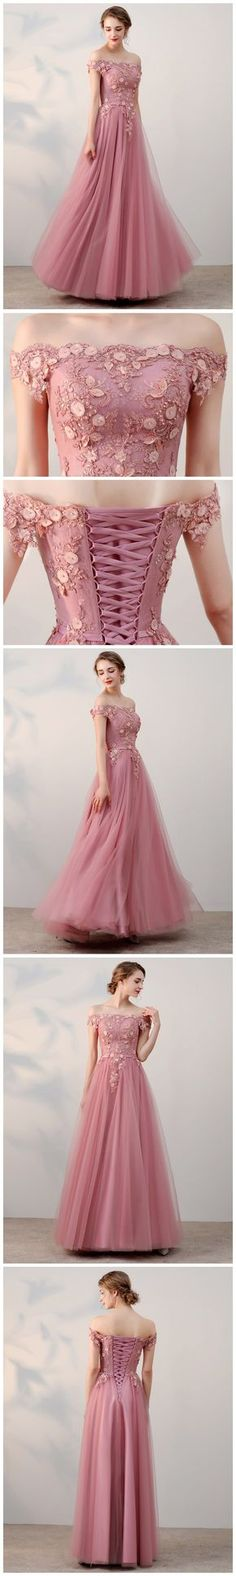 Chic A-line Off-the-shoulder pink Applique Tulle Modest Long Prom Dress Evening Dress from aimidress - 2020 New Prom Dresses Fashion - Fashion Of The Year Formal Dresses For Women, Elegant Dresses, Pretty Dresses, Beautiful Dresses, Dress Formal, Formal Gowns, Ball Gowns Prom, Ball Dresses, Homecoming Dresses